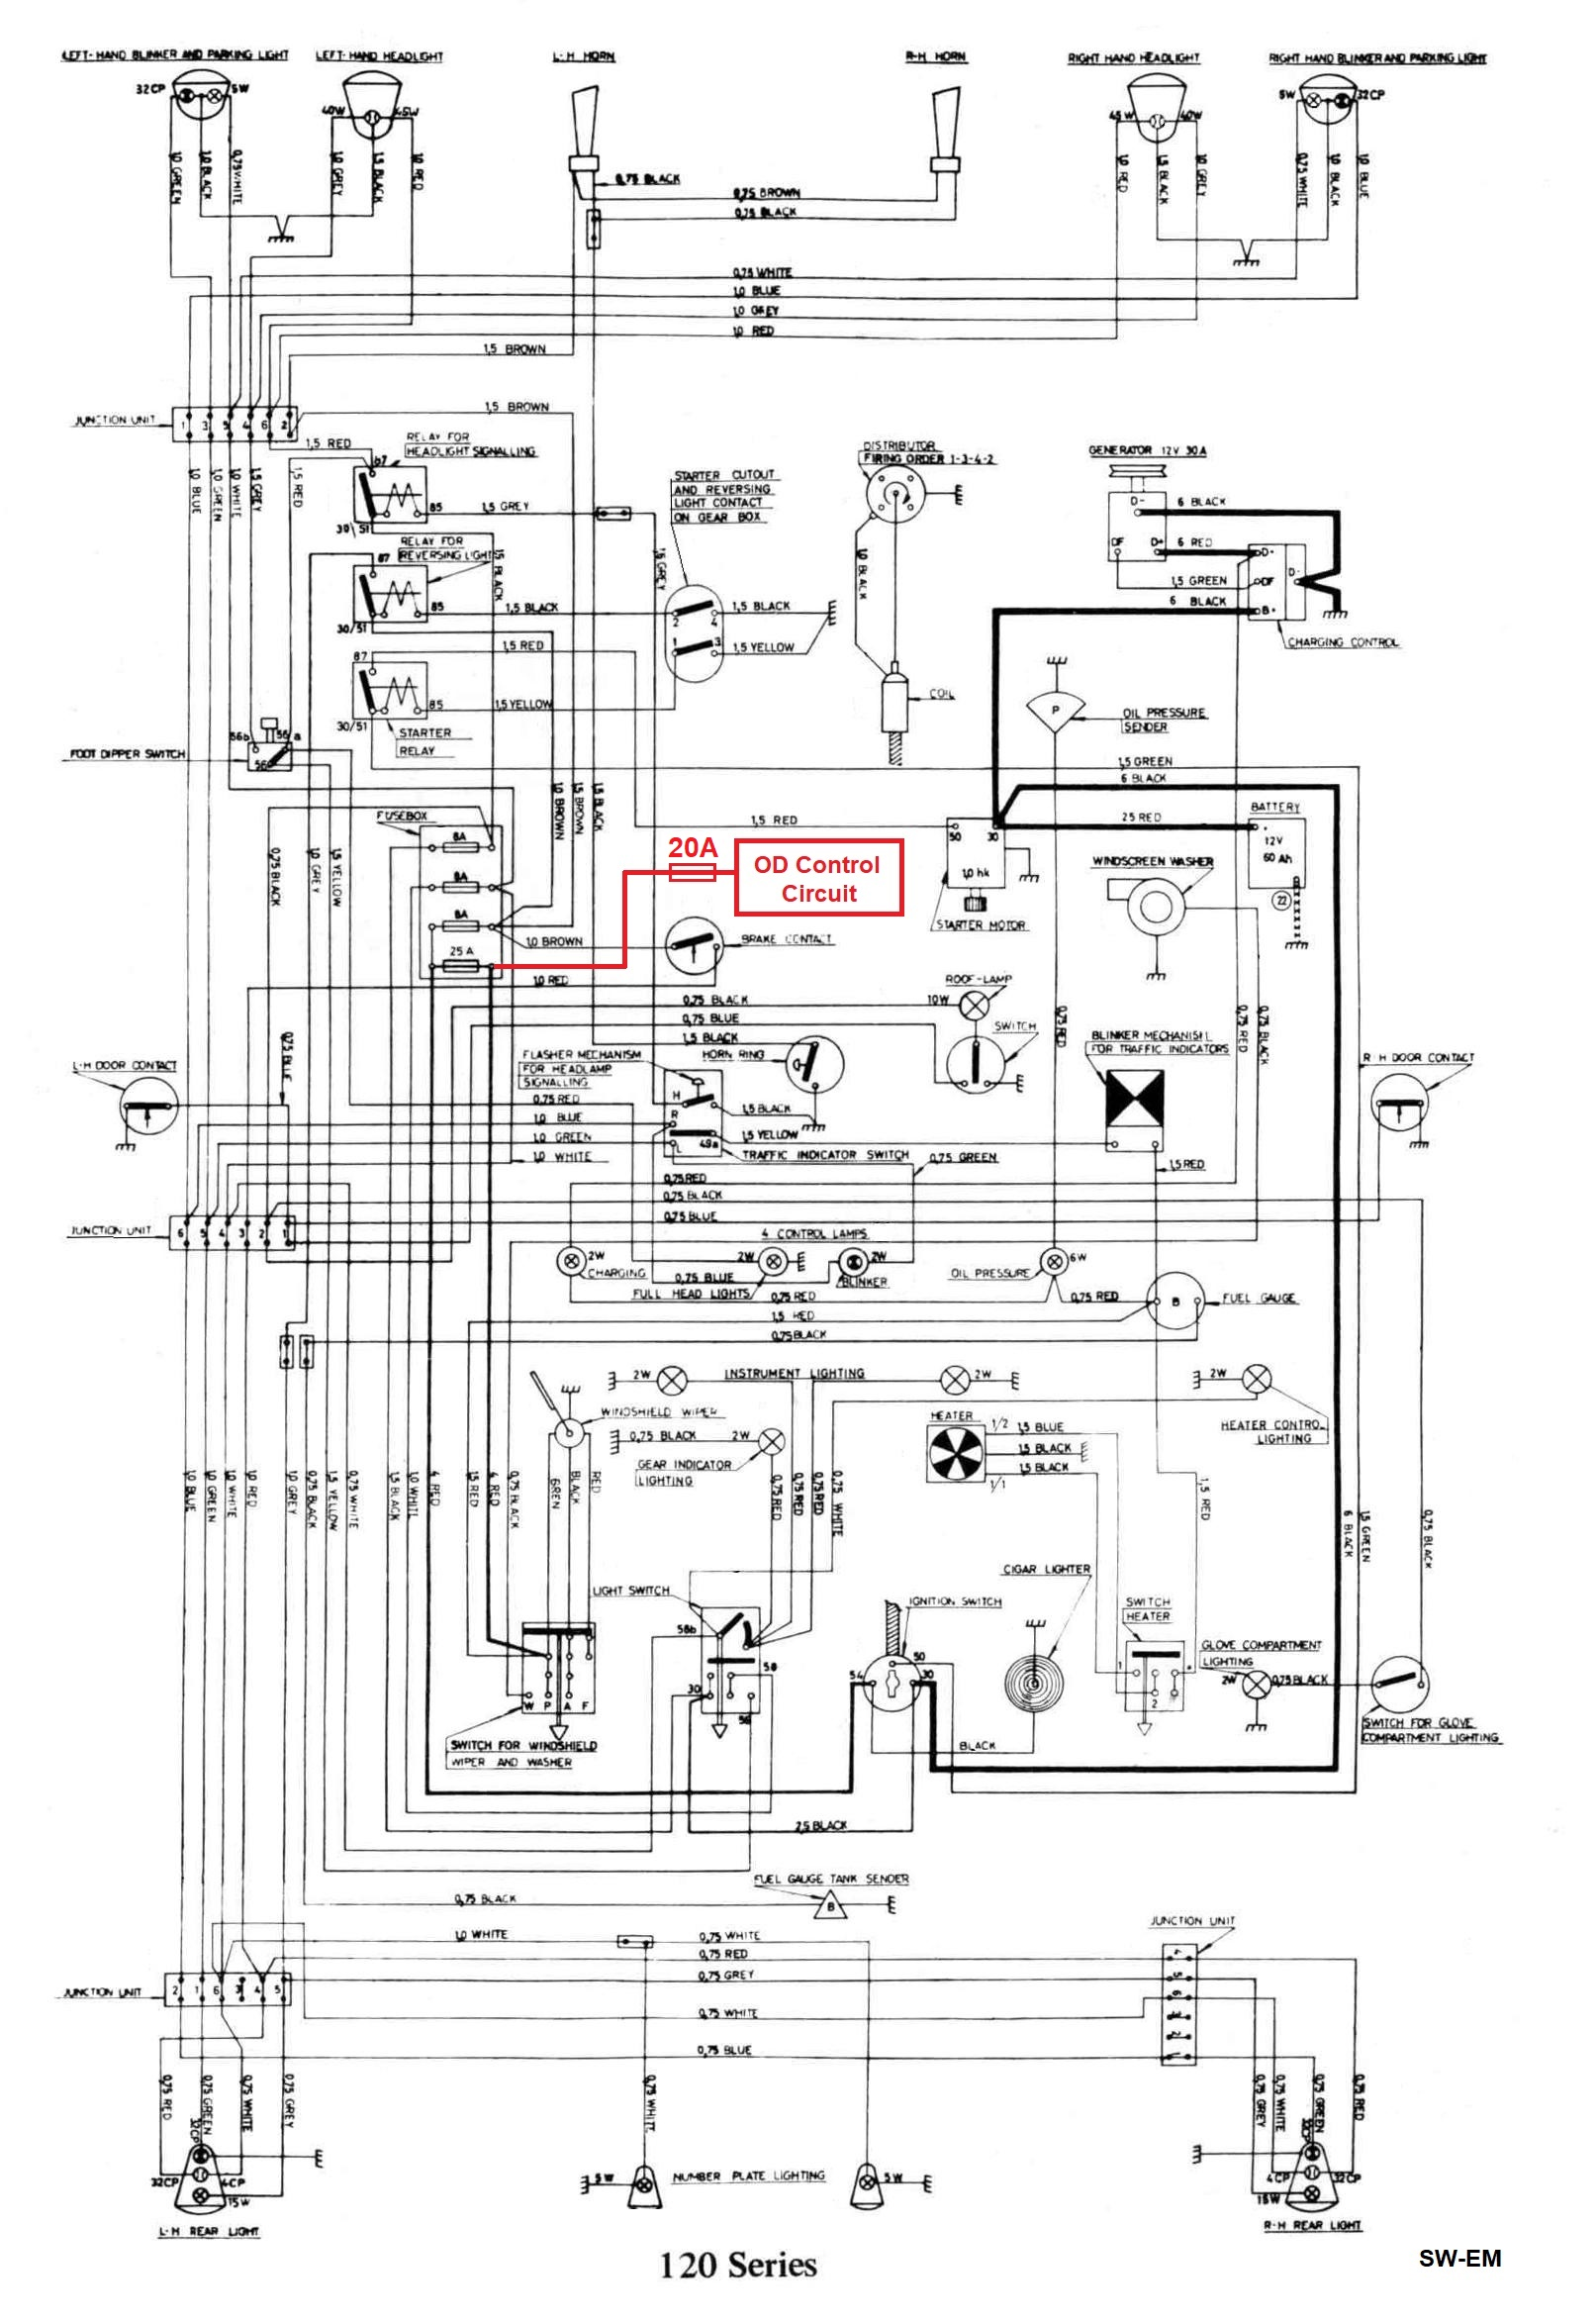 Volvo S60 Wiring Diagram - Wiring Diagram Replace wave-activity -  wave-activity.miramontiseo.it | 2007 Volvo S60 Wiring Diagram |  | wave-activity.miramontiseo.it